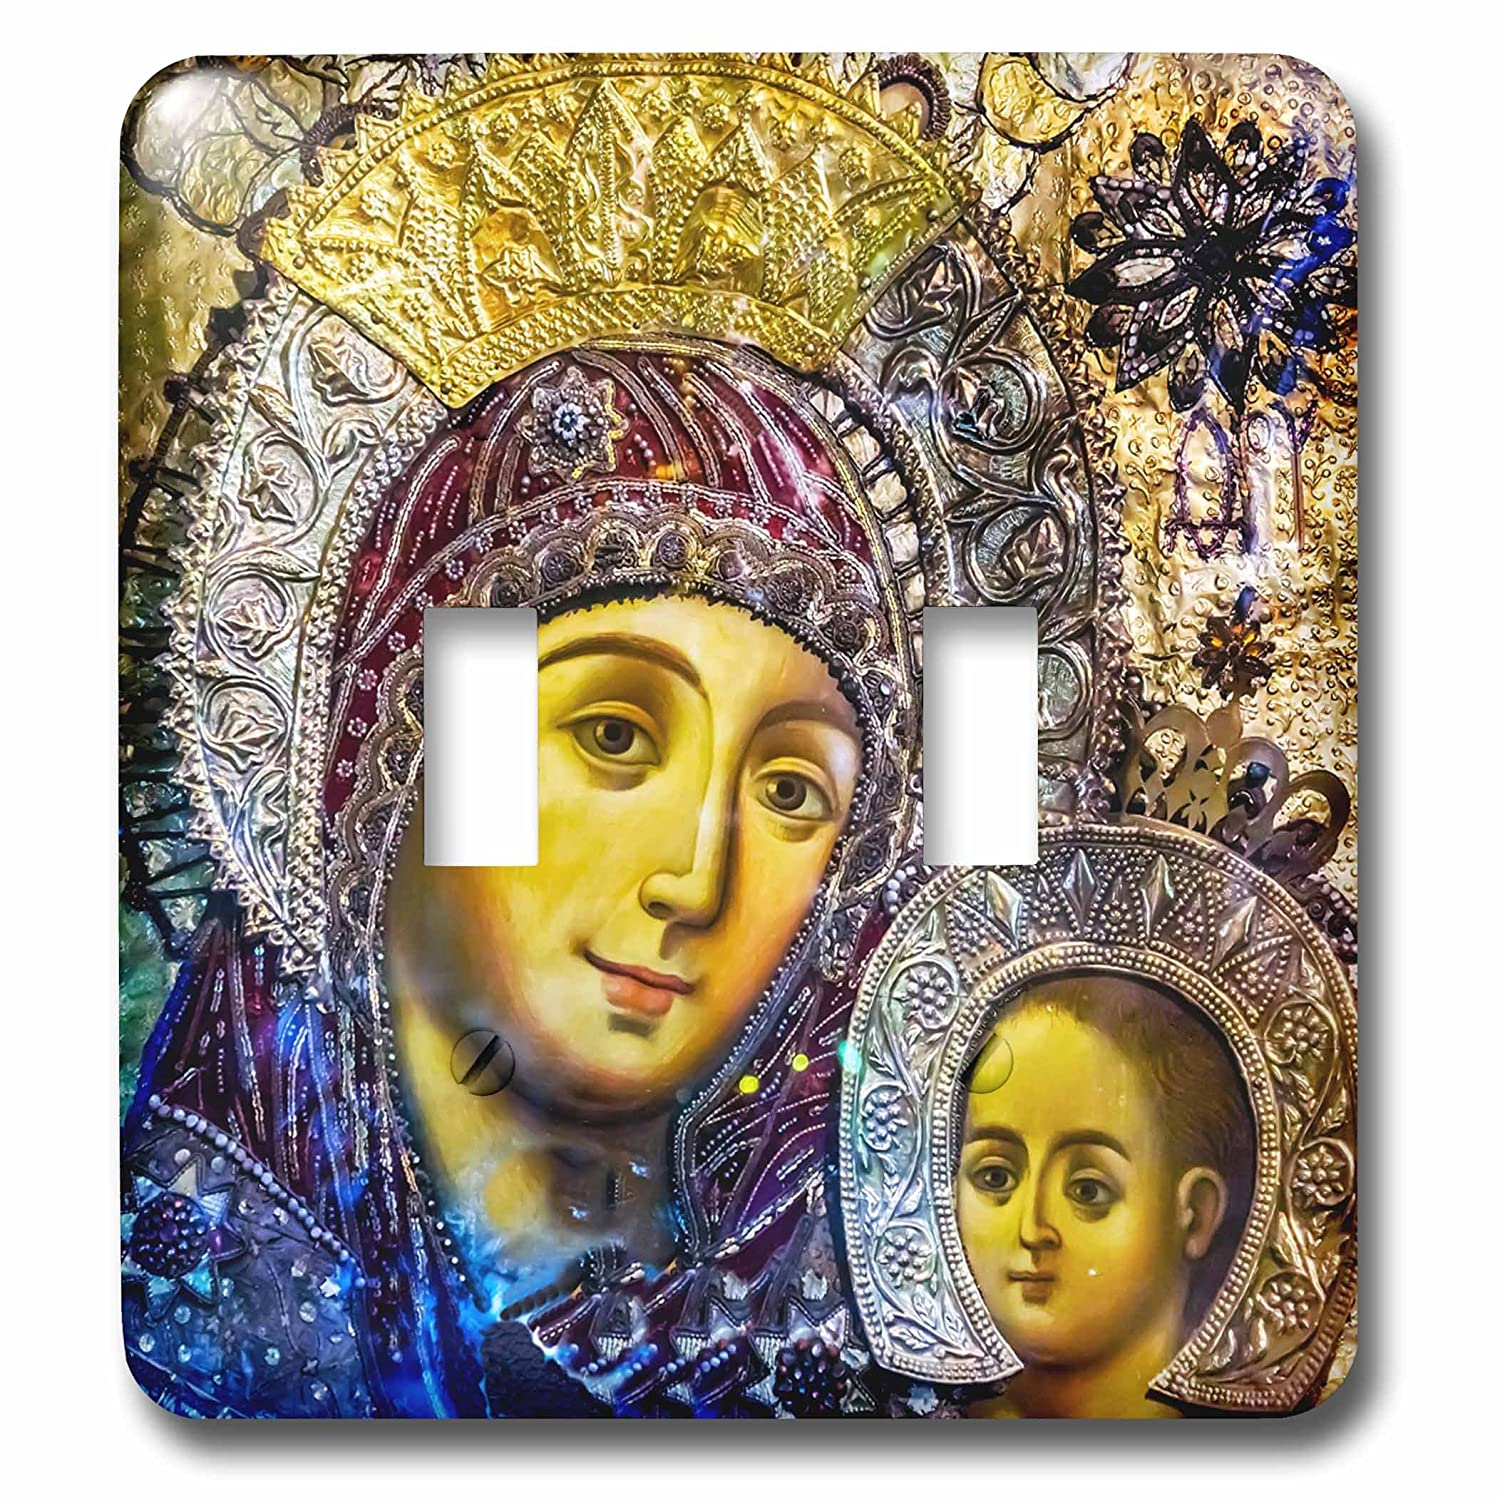 3drose Danita Delimont Religion Mary And Jesus Icon Church Of